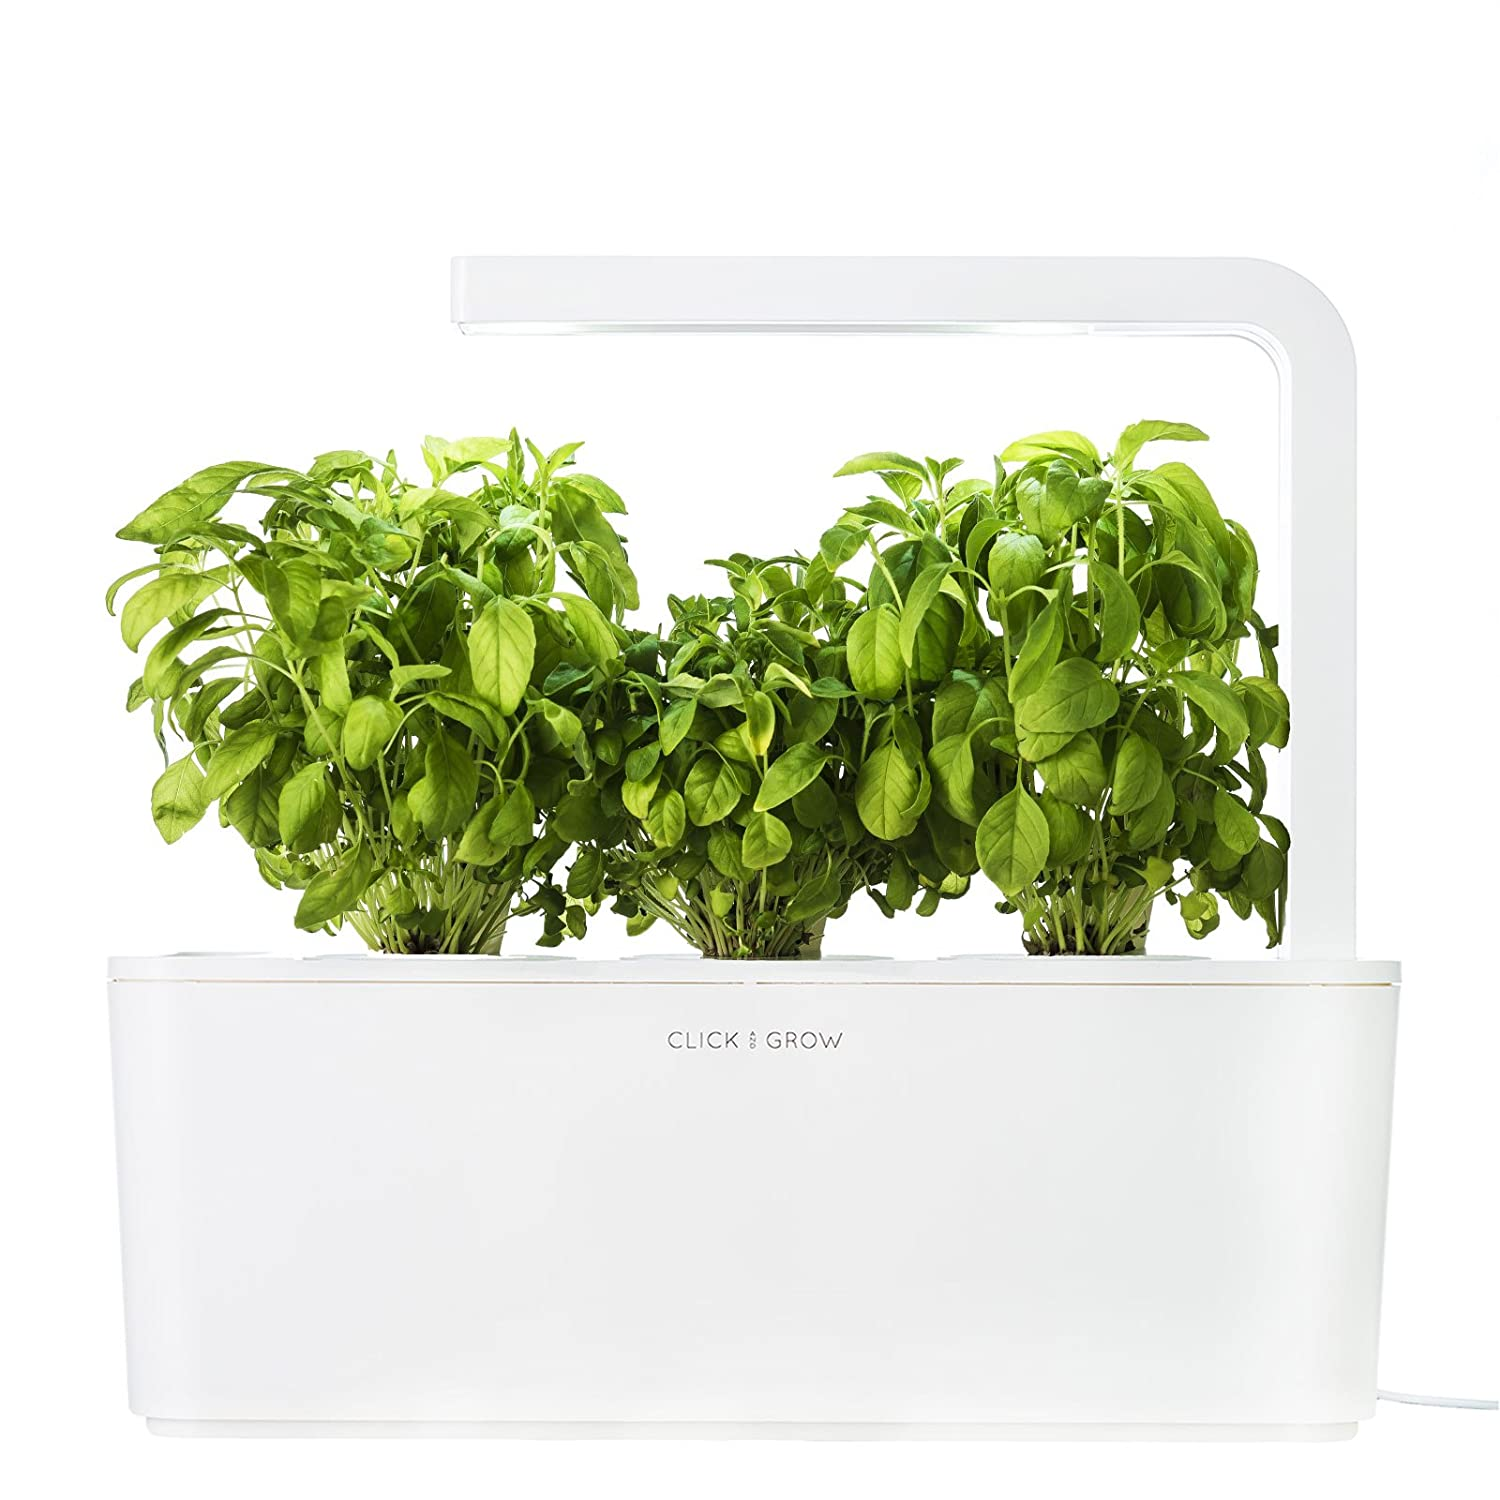 Led Kitchen Garden Amazoncom Click Grow Indoor Smart Fresh Herb Garden Kit With